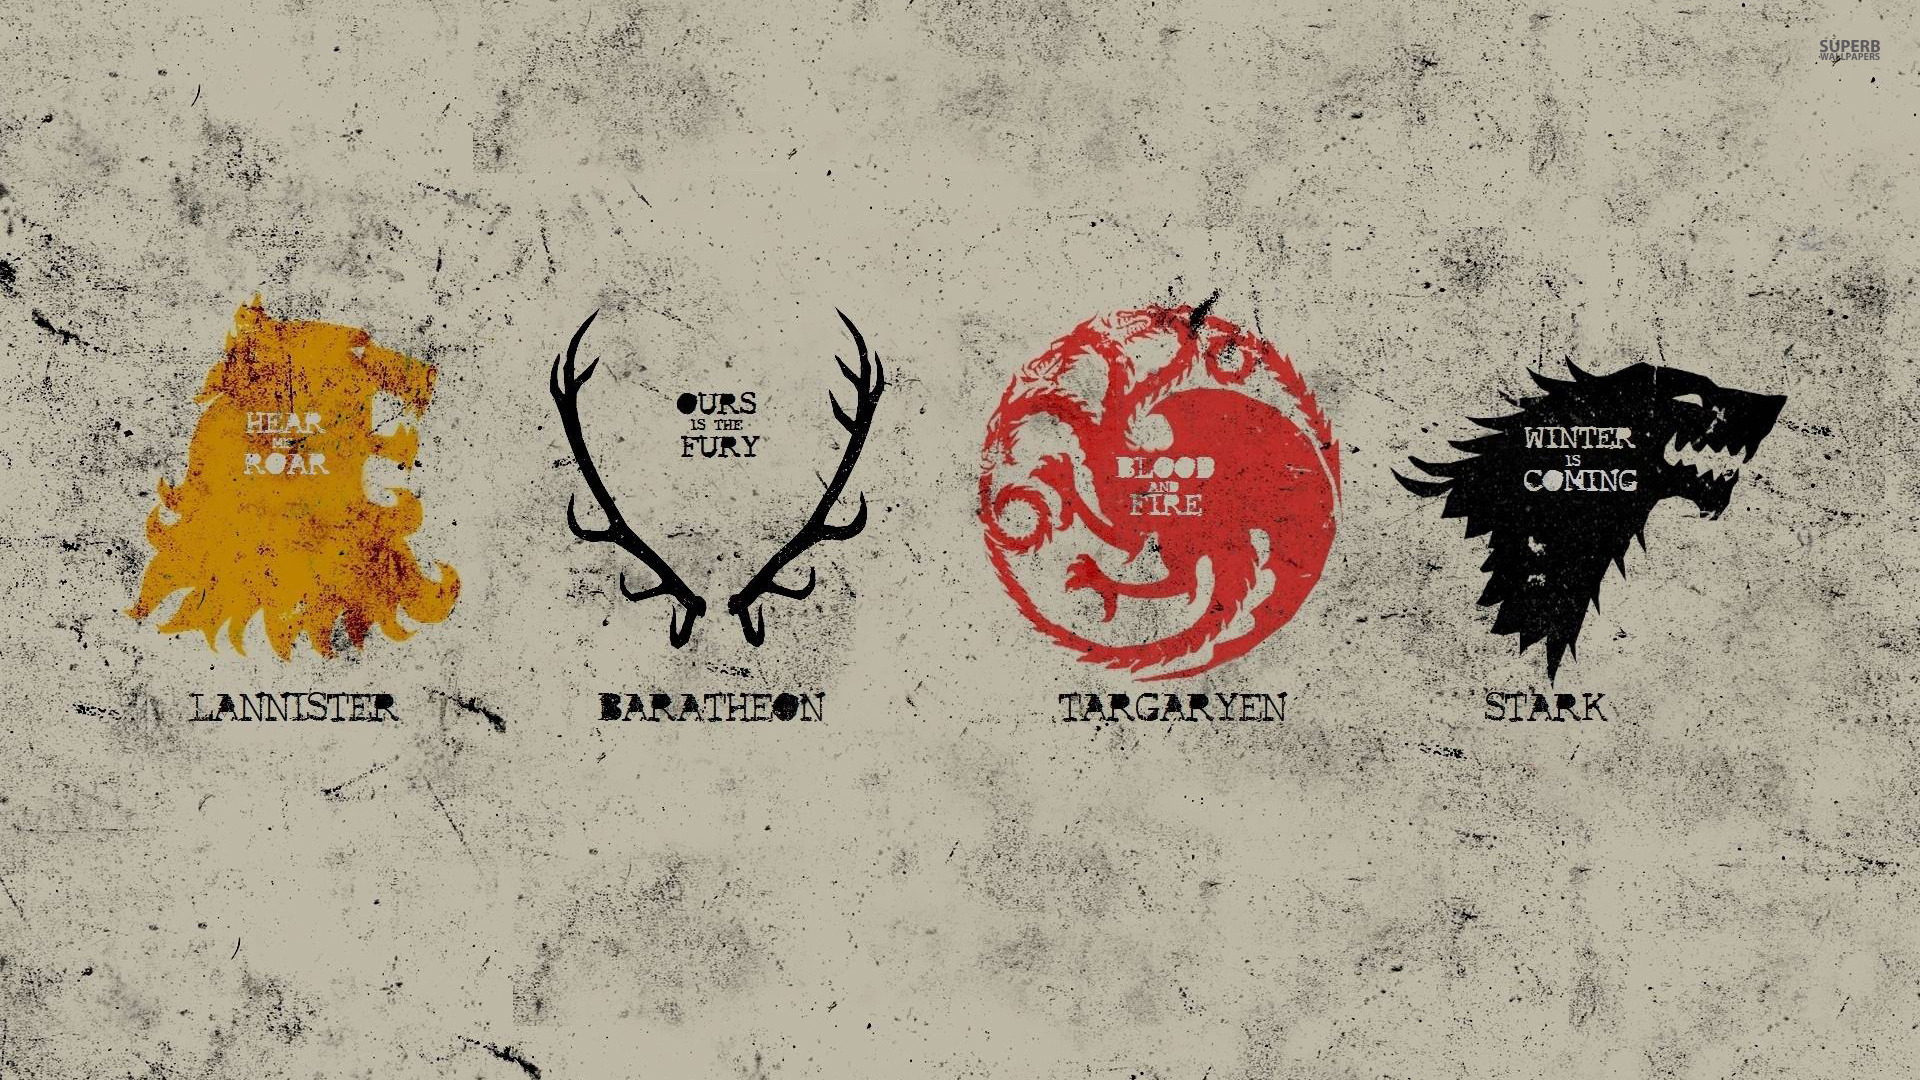 30 Hd Game Of Thrones Wallpapers To Support Your Favorite House